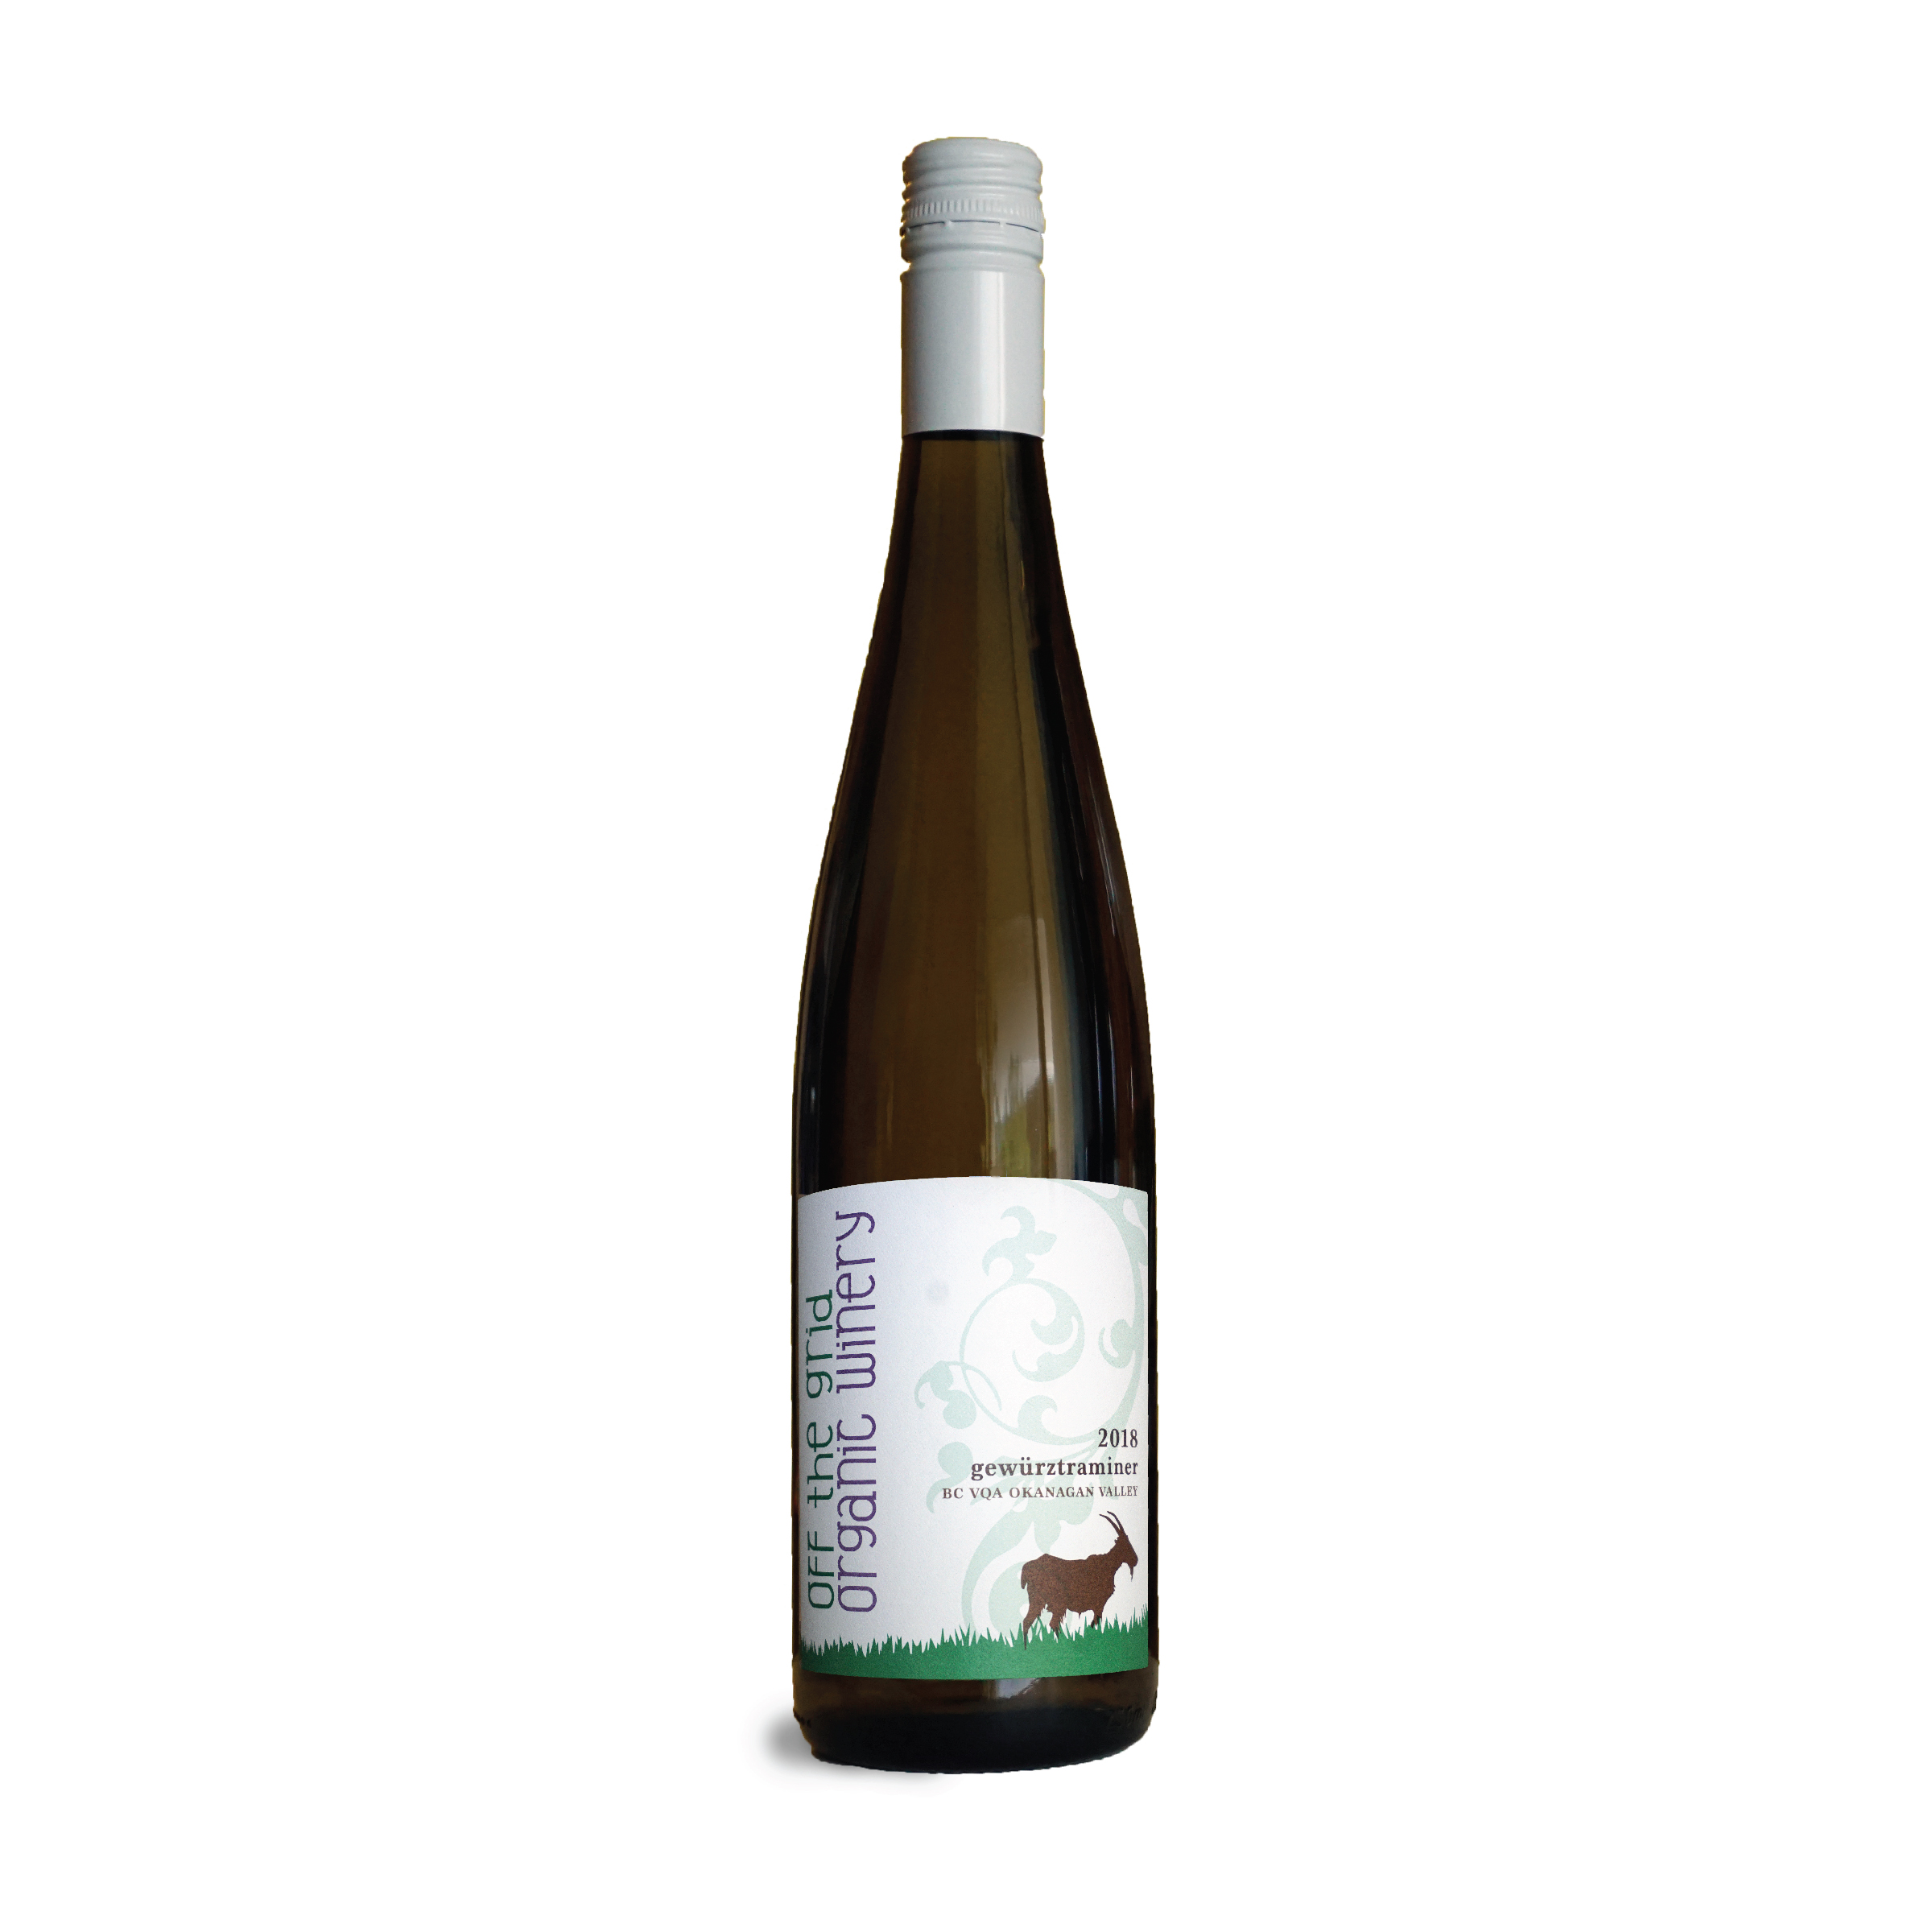 2018 Gewurztraminer - $24.00This Gewürztraminer showcases citrus notes on the nose of grapefruit and tangerine. On the palate it is well balanced with a light florality on the finish. Best paired with India and Thai food, or a fresh mango salad.